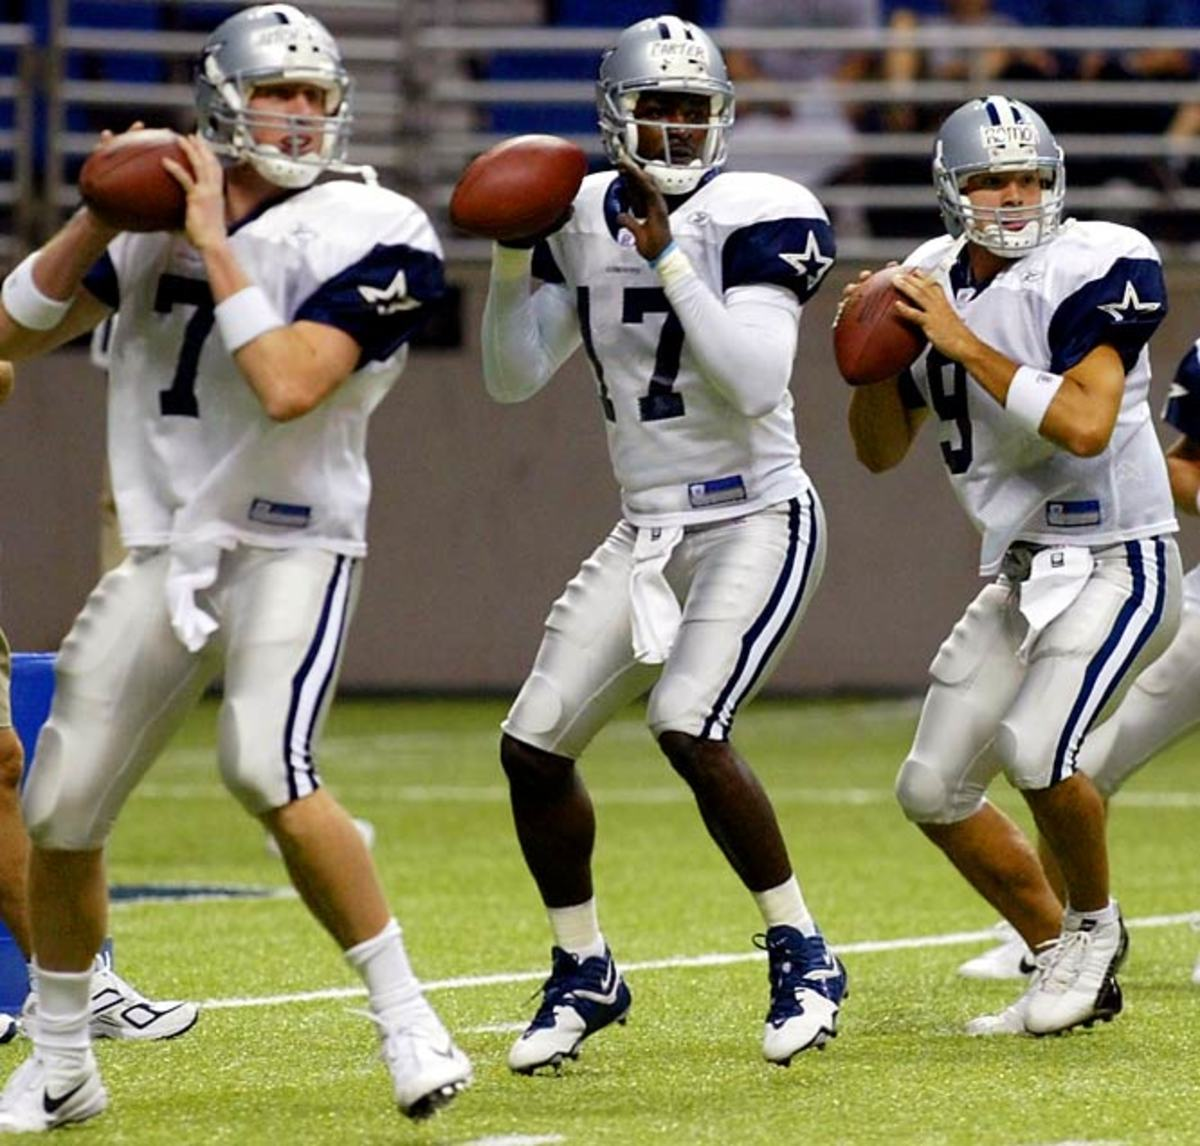 From left to right: Drew Henson, Quincy Carter, and Tony Romo.